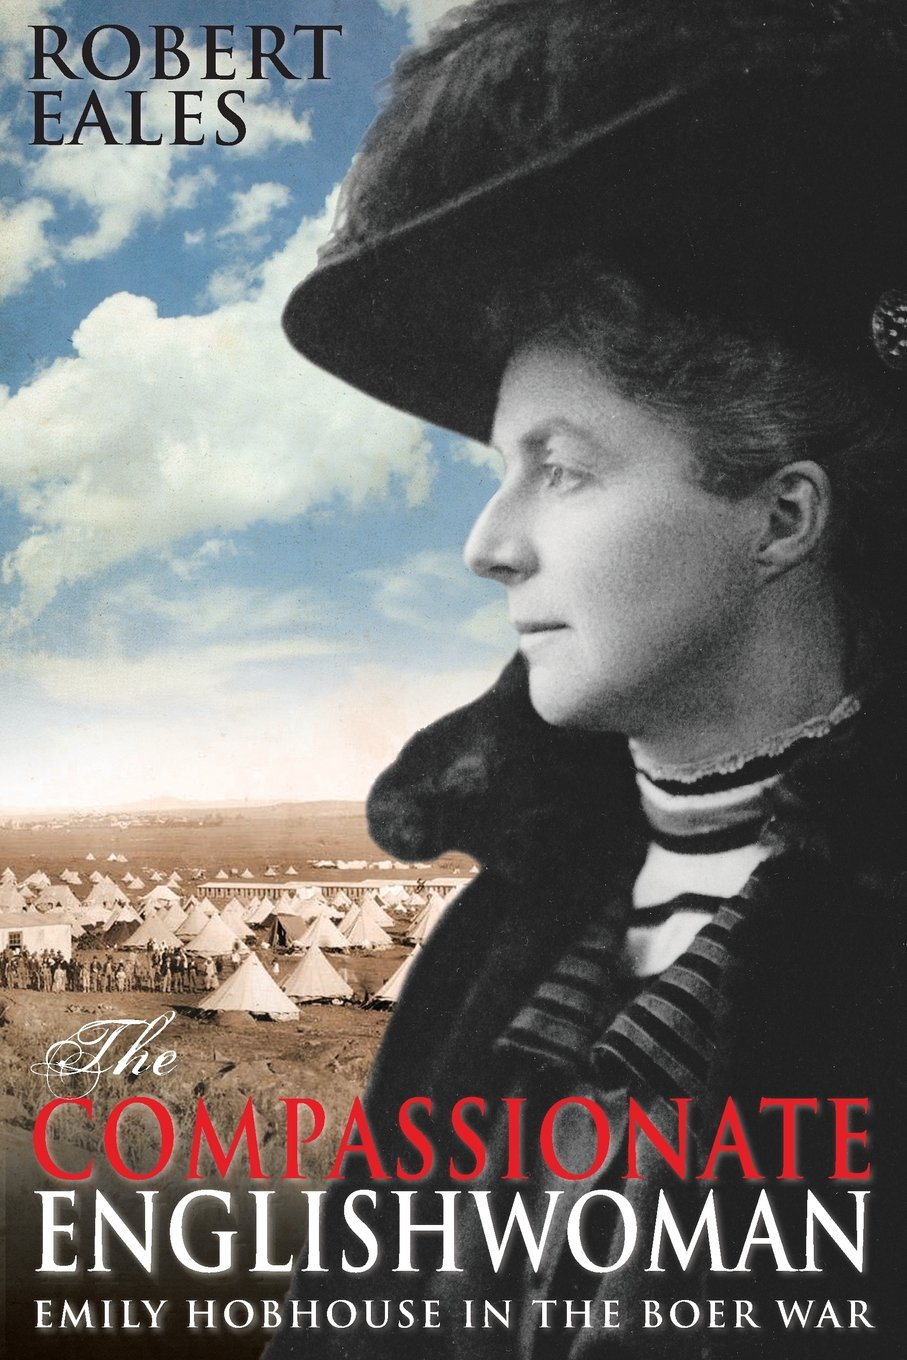 Download The Compassionate Englishwoman: Emily Hobhouse in the Boer War PDF